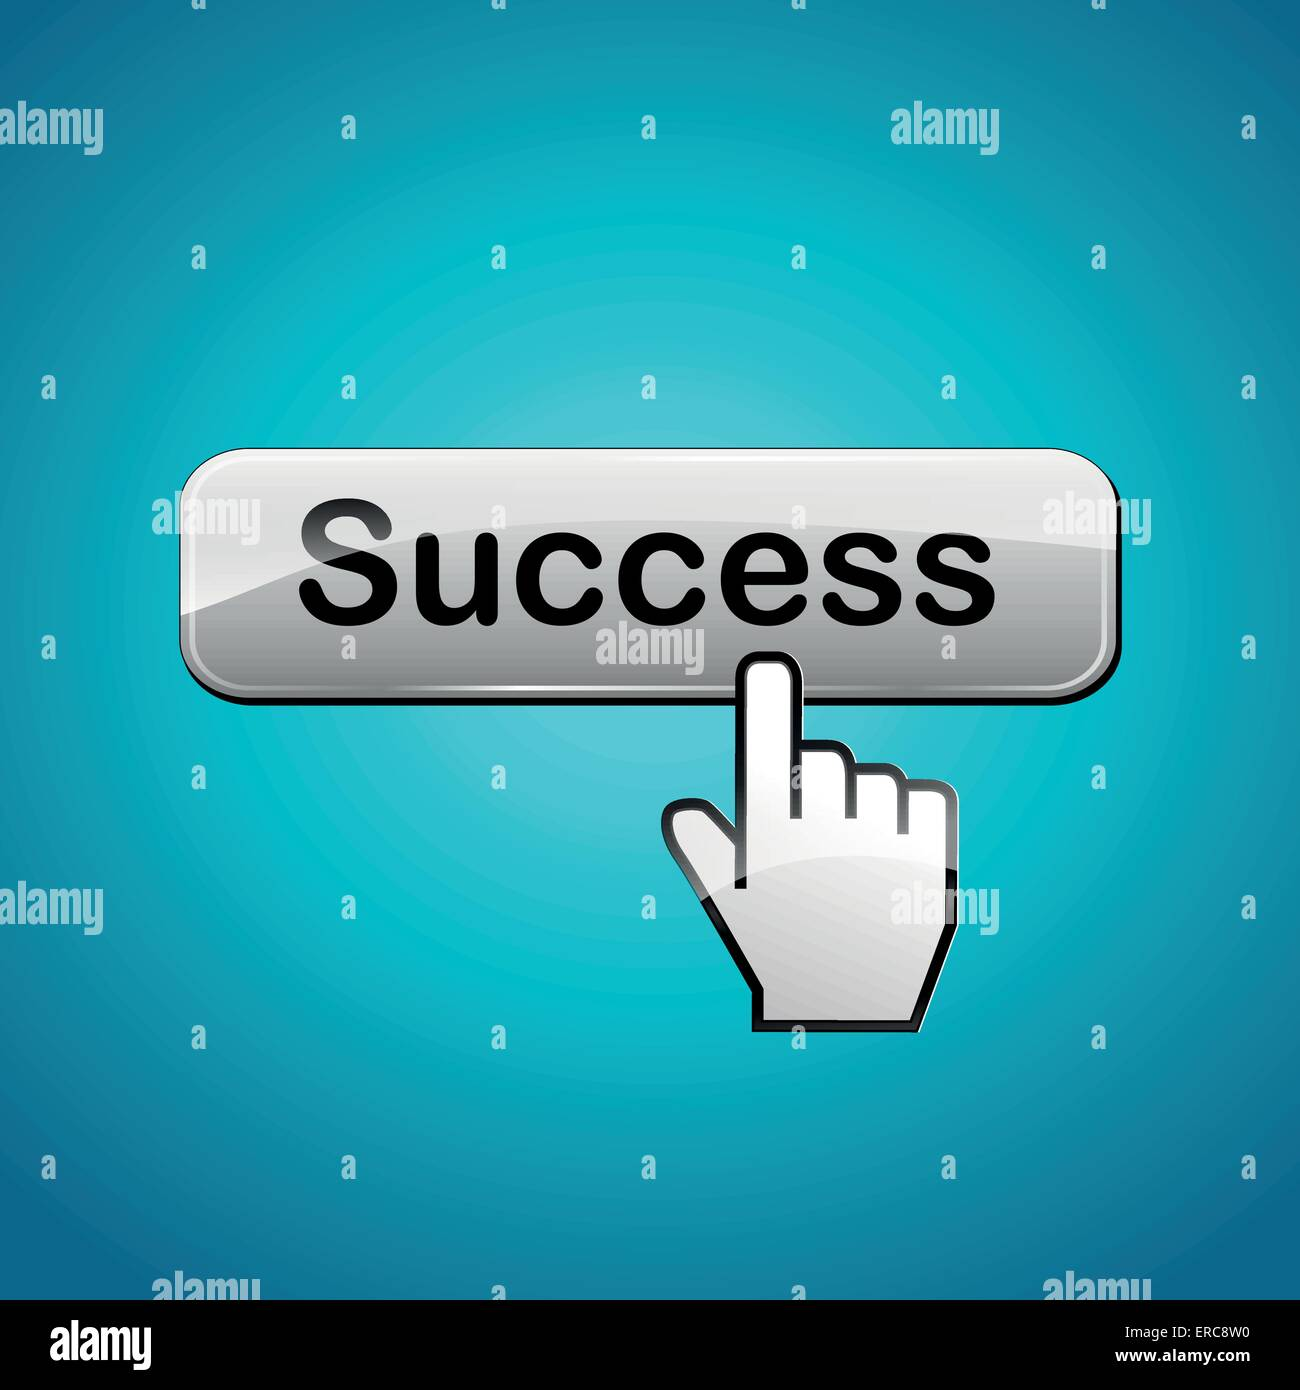 Vector illustration of success abstract concept background - Stock Image